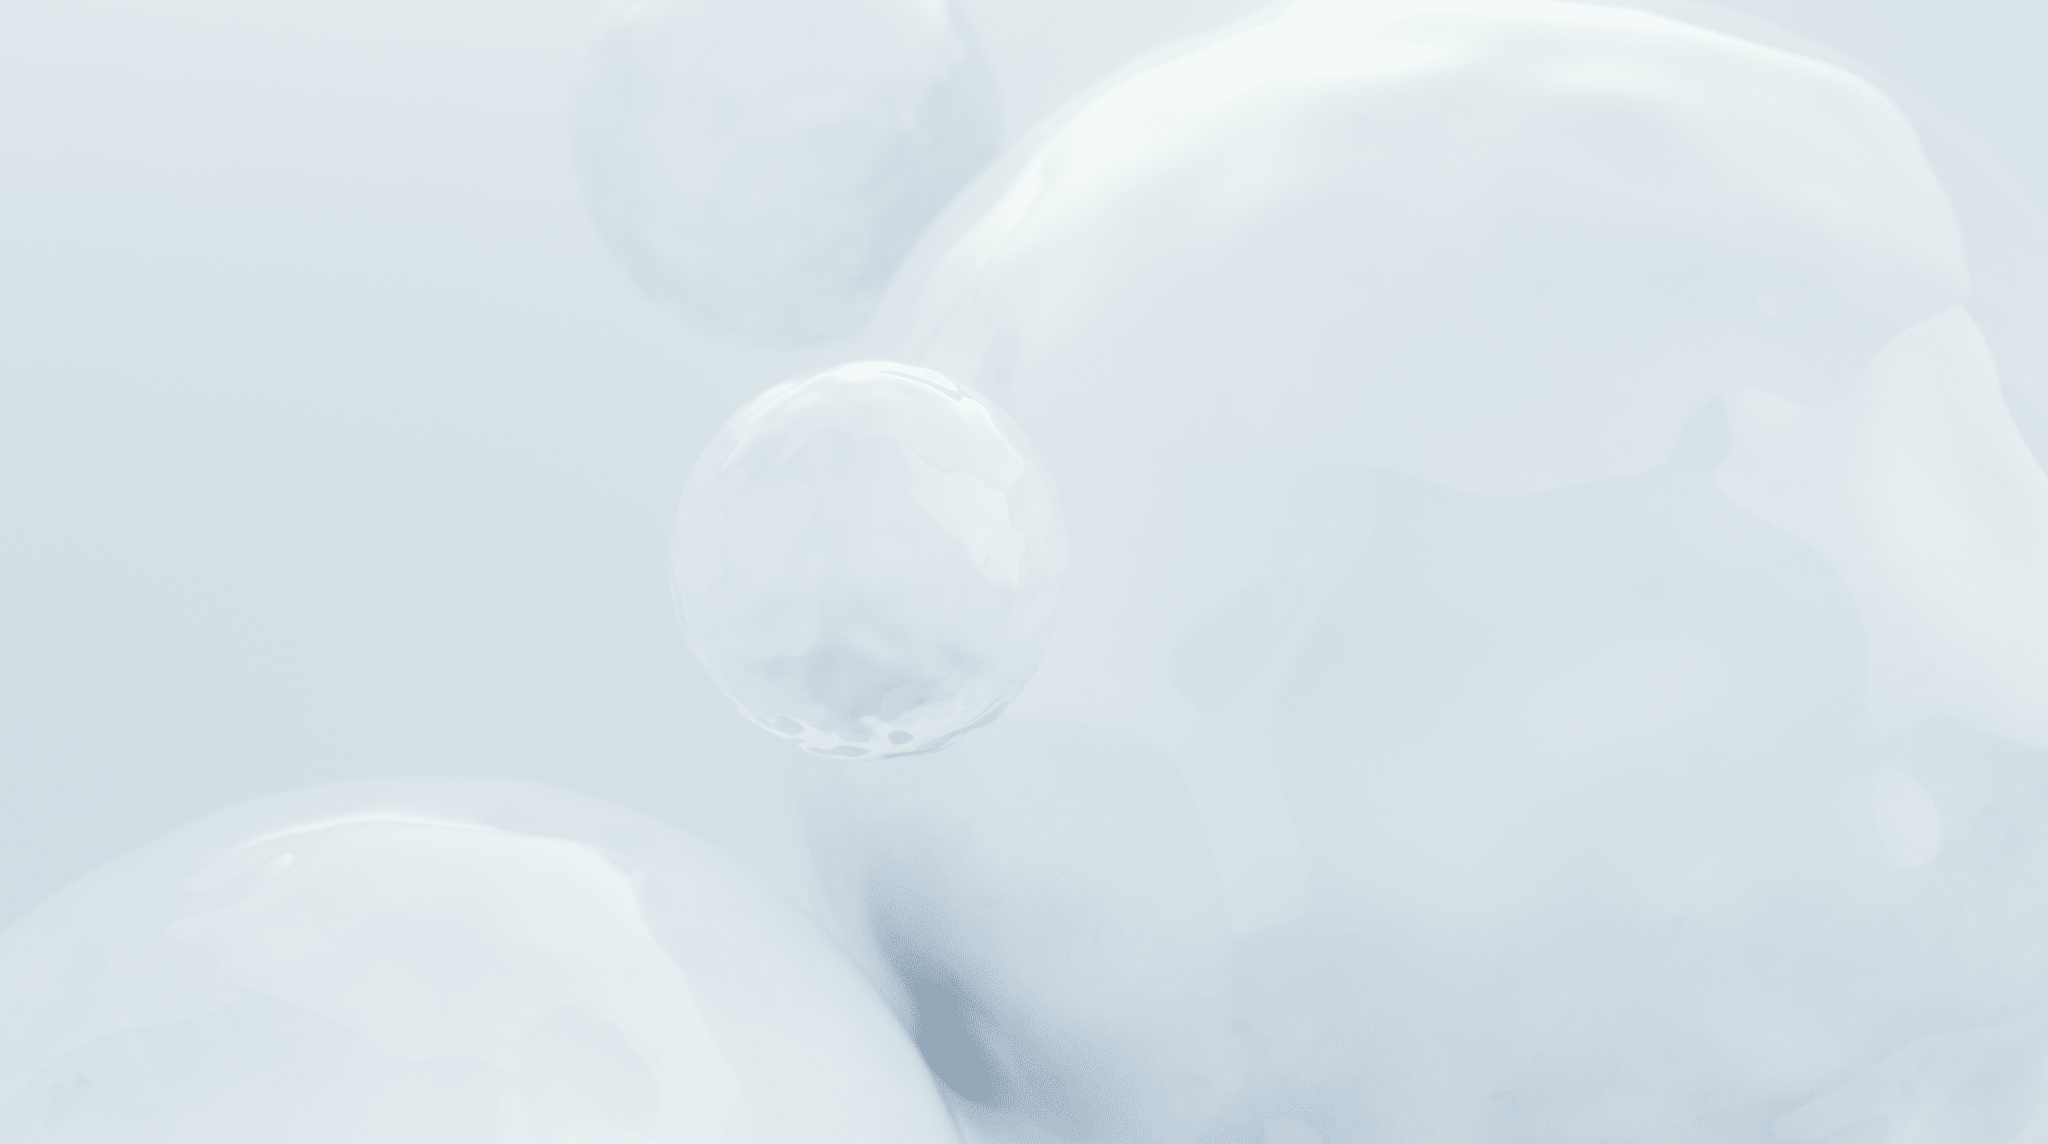 Faded background bubbles